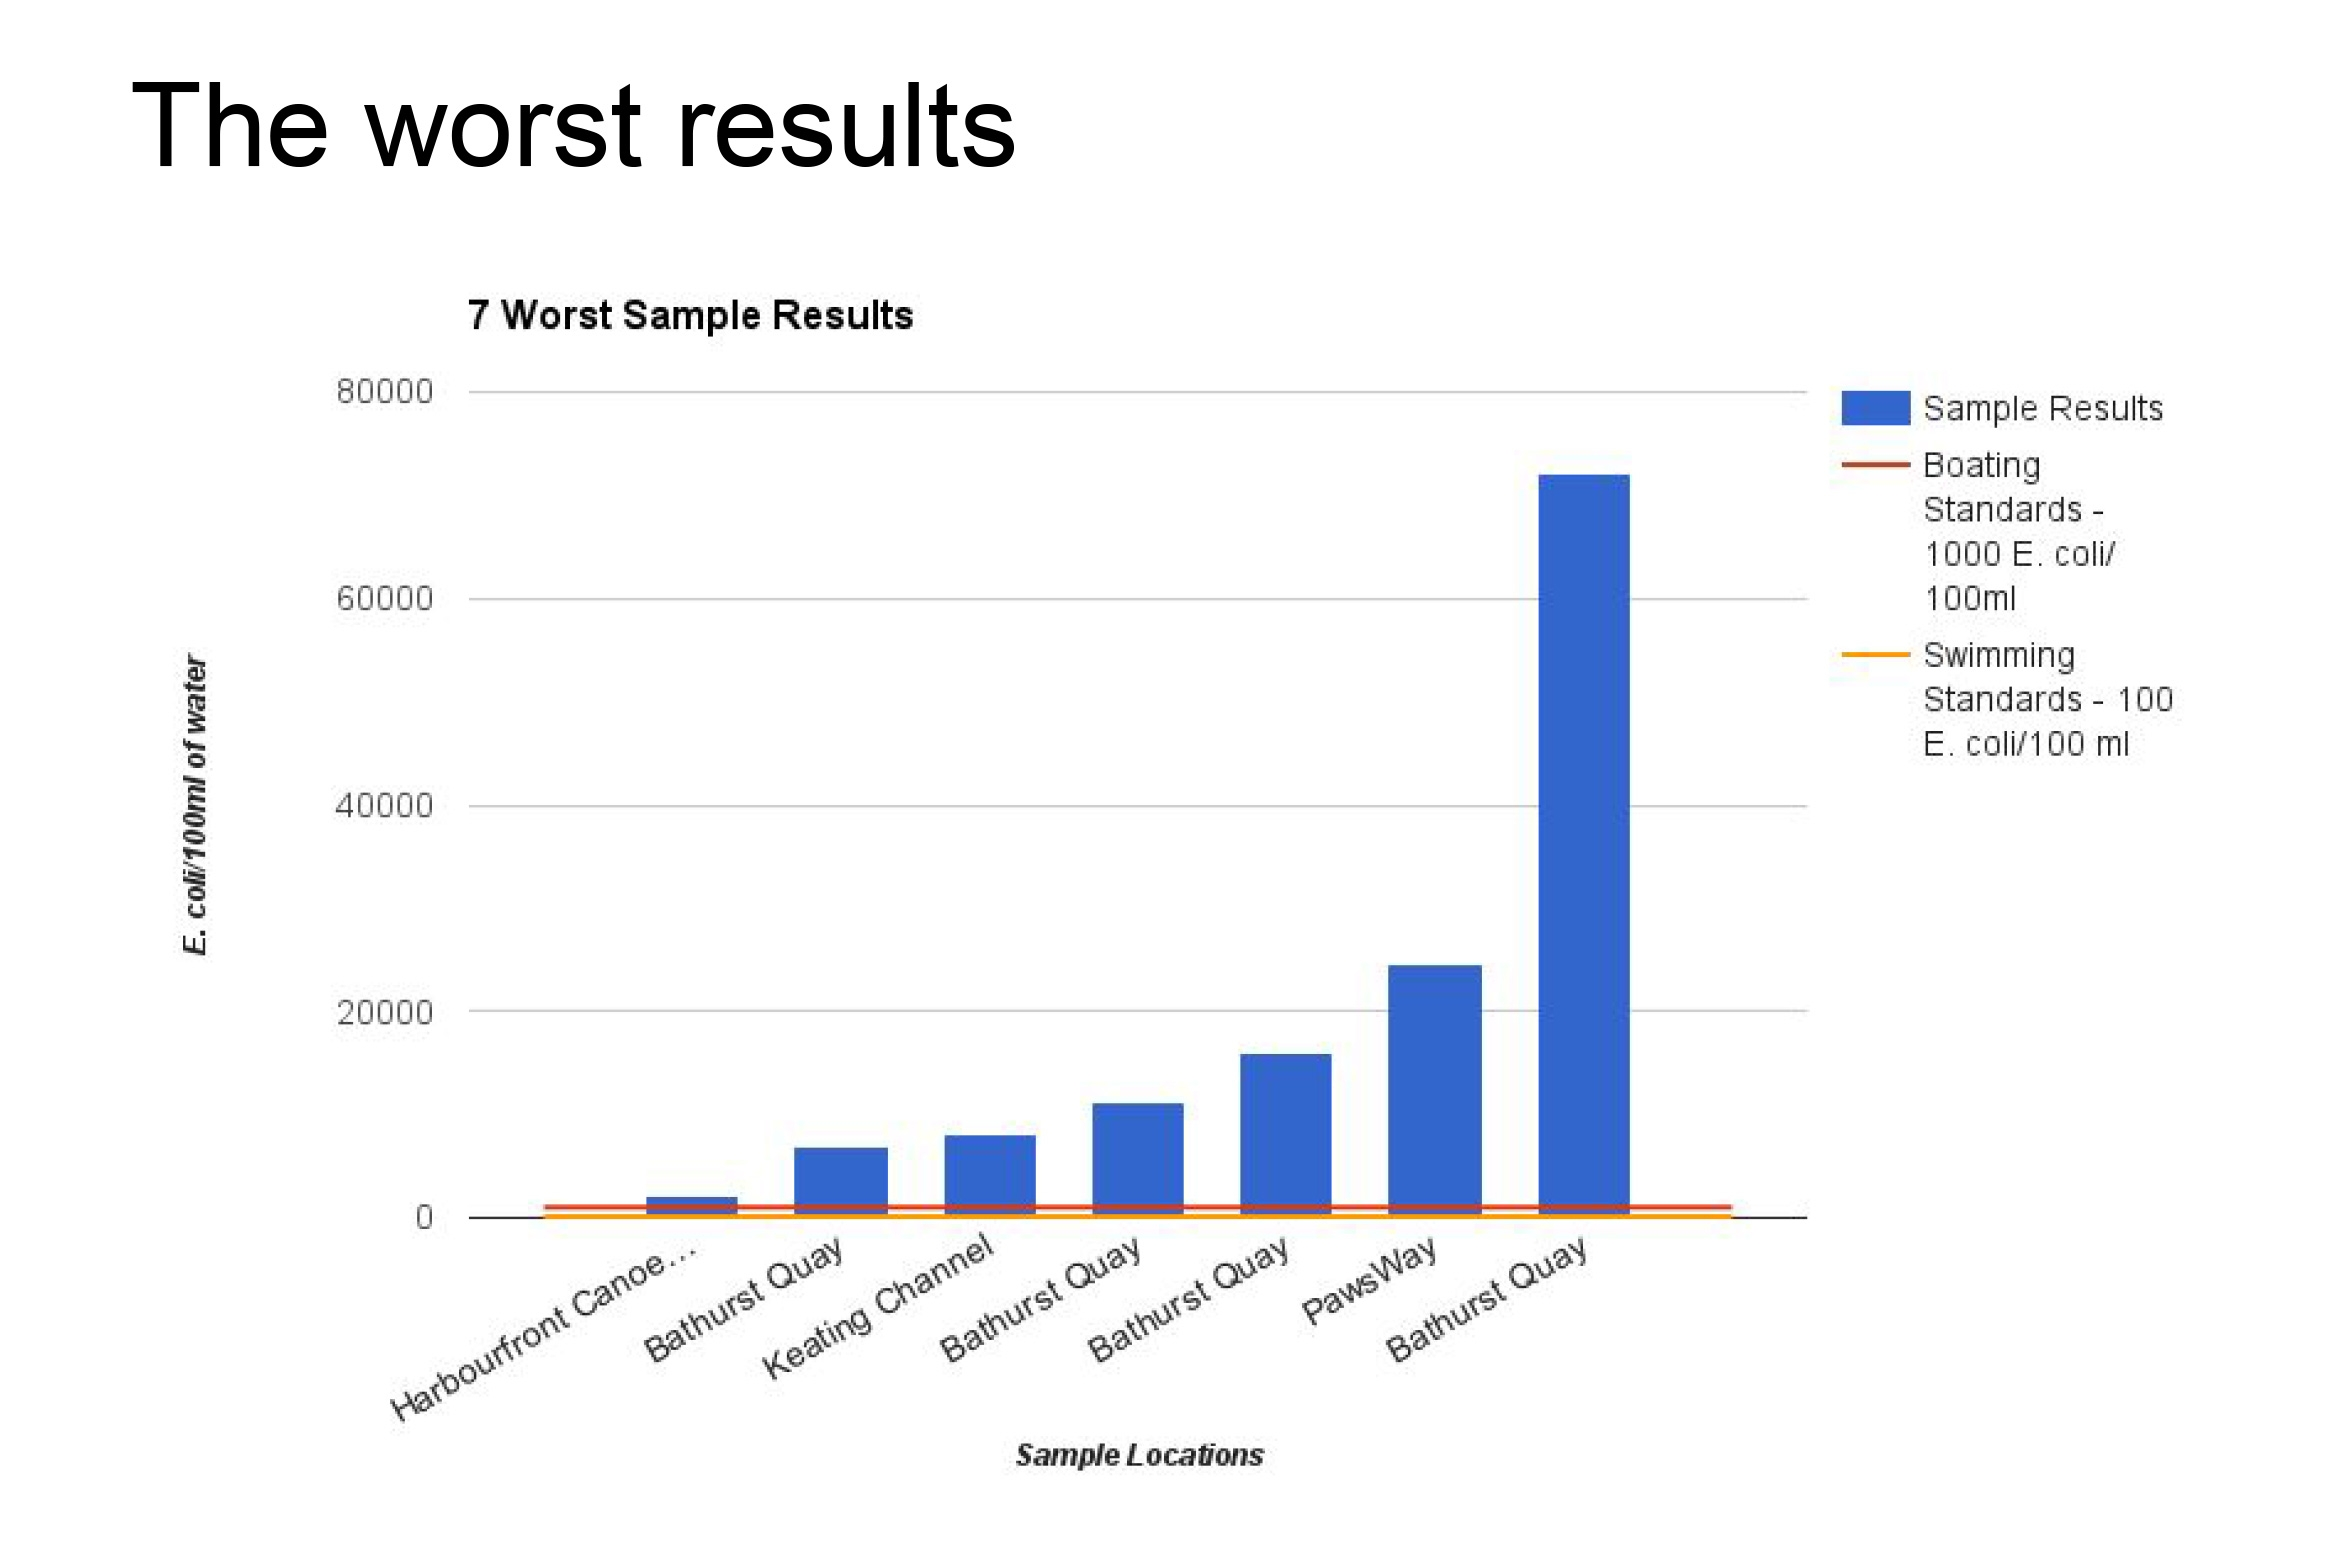 Lab results from sampling water from Toronto's harbour shows worst results were consistently found in the Bathurst Quay.